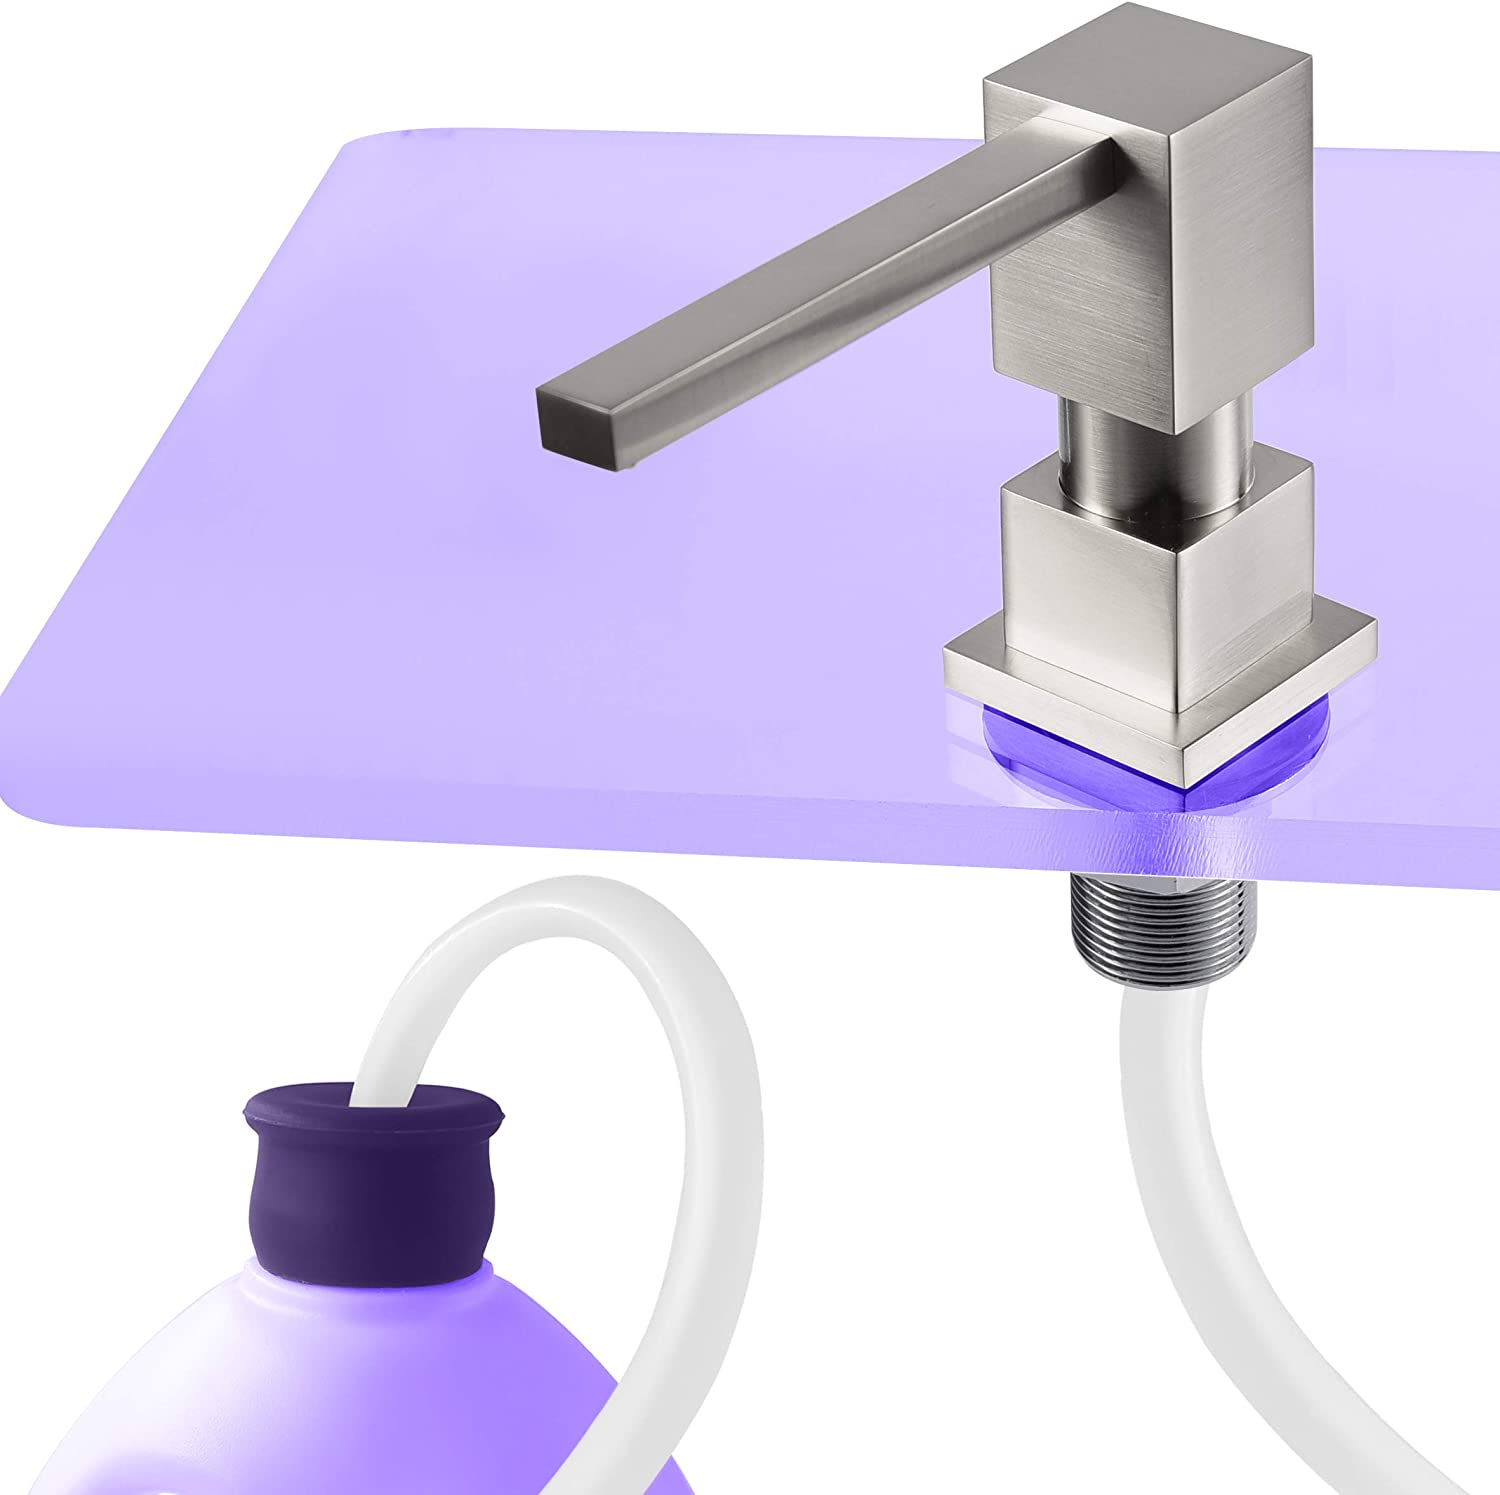 """Gagal Square Built in counter Soap Dispenser(Brushed Nickel) and Extension Tube Kit for Kitchen Sink, Complete Brass Pump with 40"""" Silicone Tube Connect to Soap Bottle Directly, Say Goodbye to Refills"""